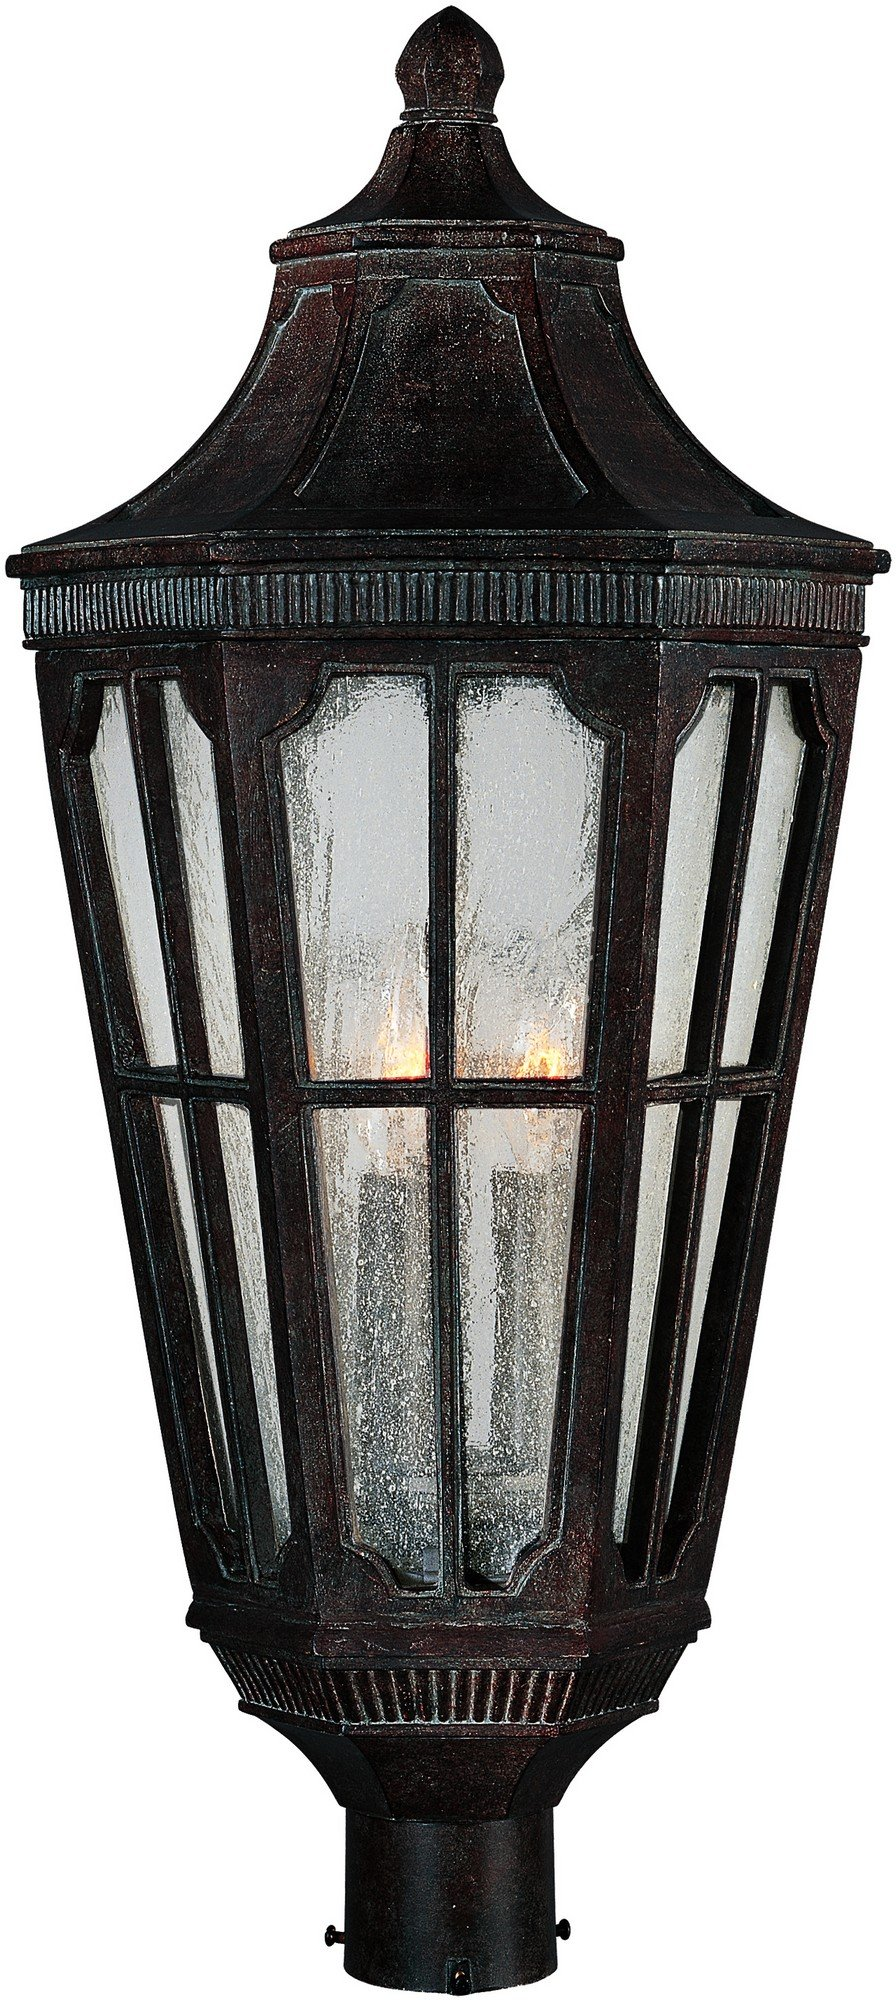 Maxim 40150CDSE Beacon Hill VX 3-Light Outdoor Pole/Post Lantern, Sienna Finish, Seedy Glass, CA Incandescent Incandescent Bulb , 60W Max., Damp Safety Rating, Standard Dimmable, Frosted Glass Shade Material, Rated Lumens